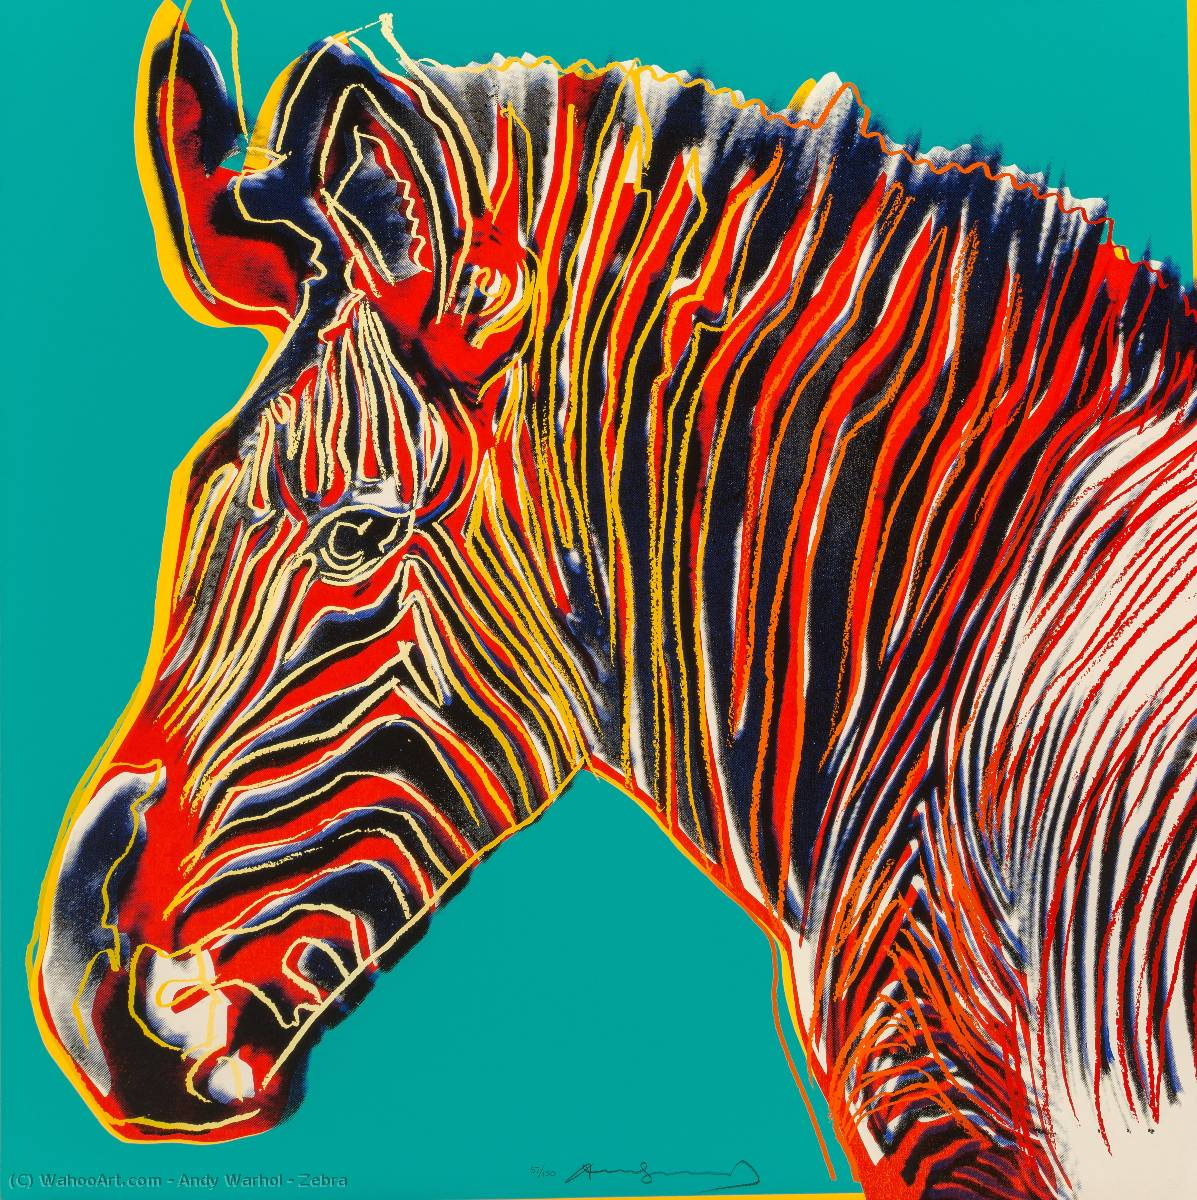 famous painting Zebra of Andy Warhol